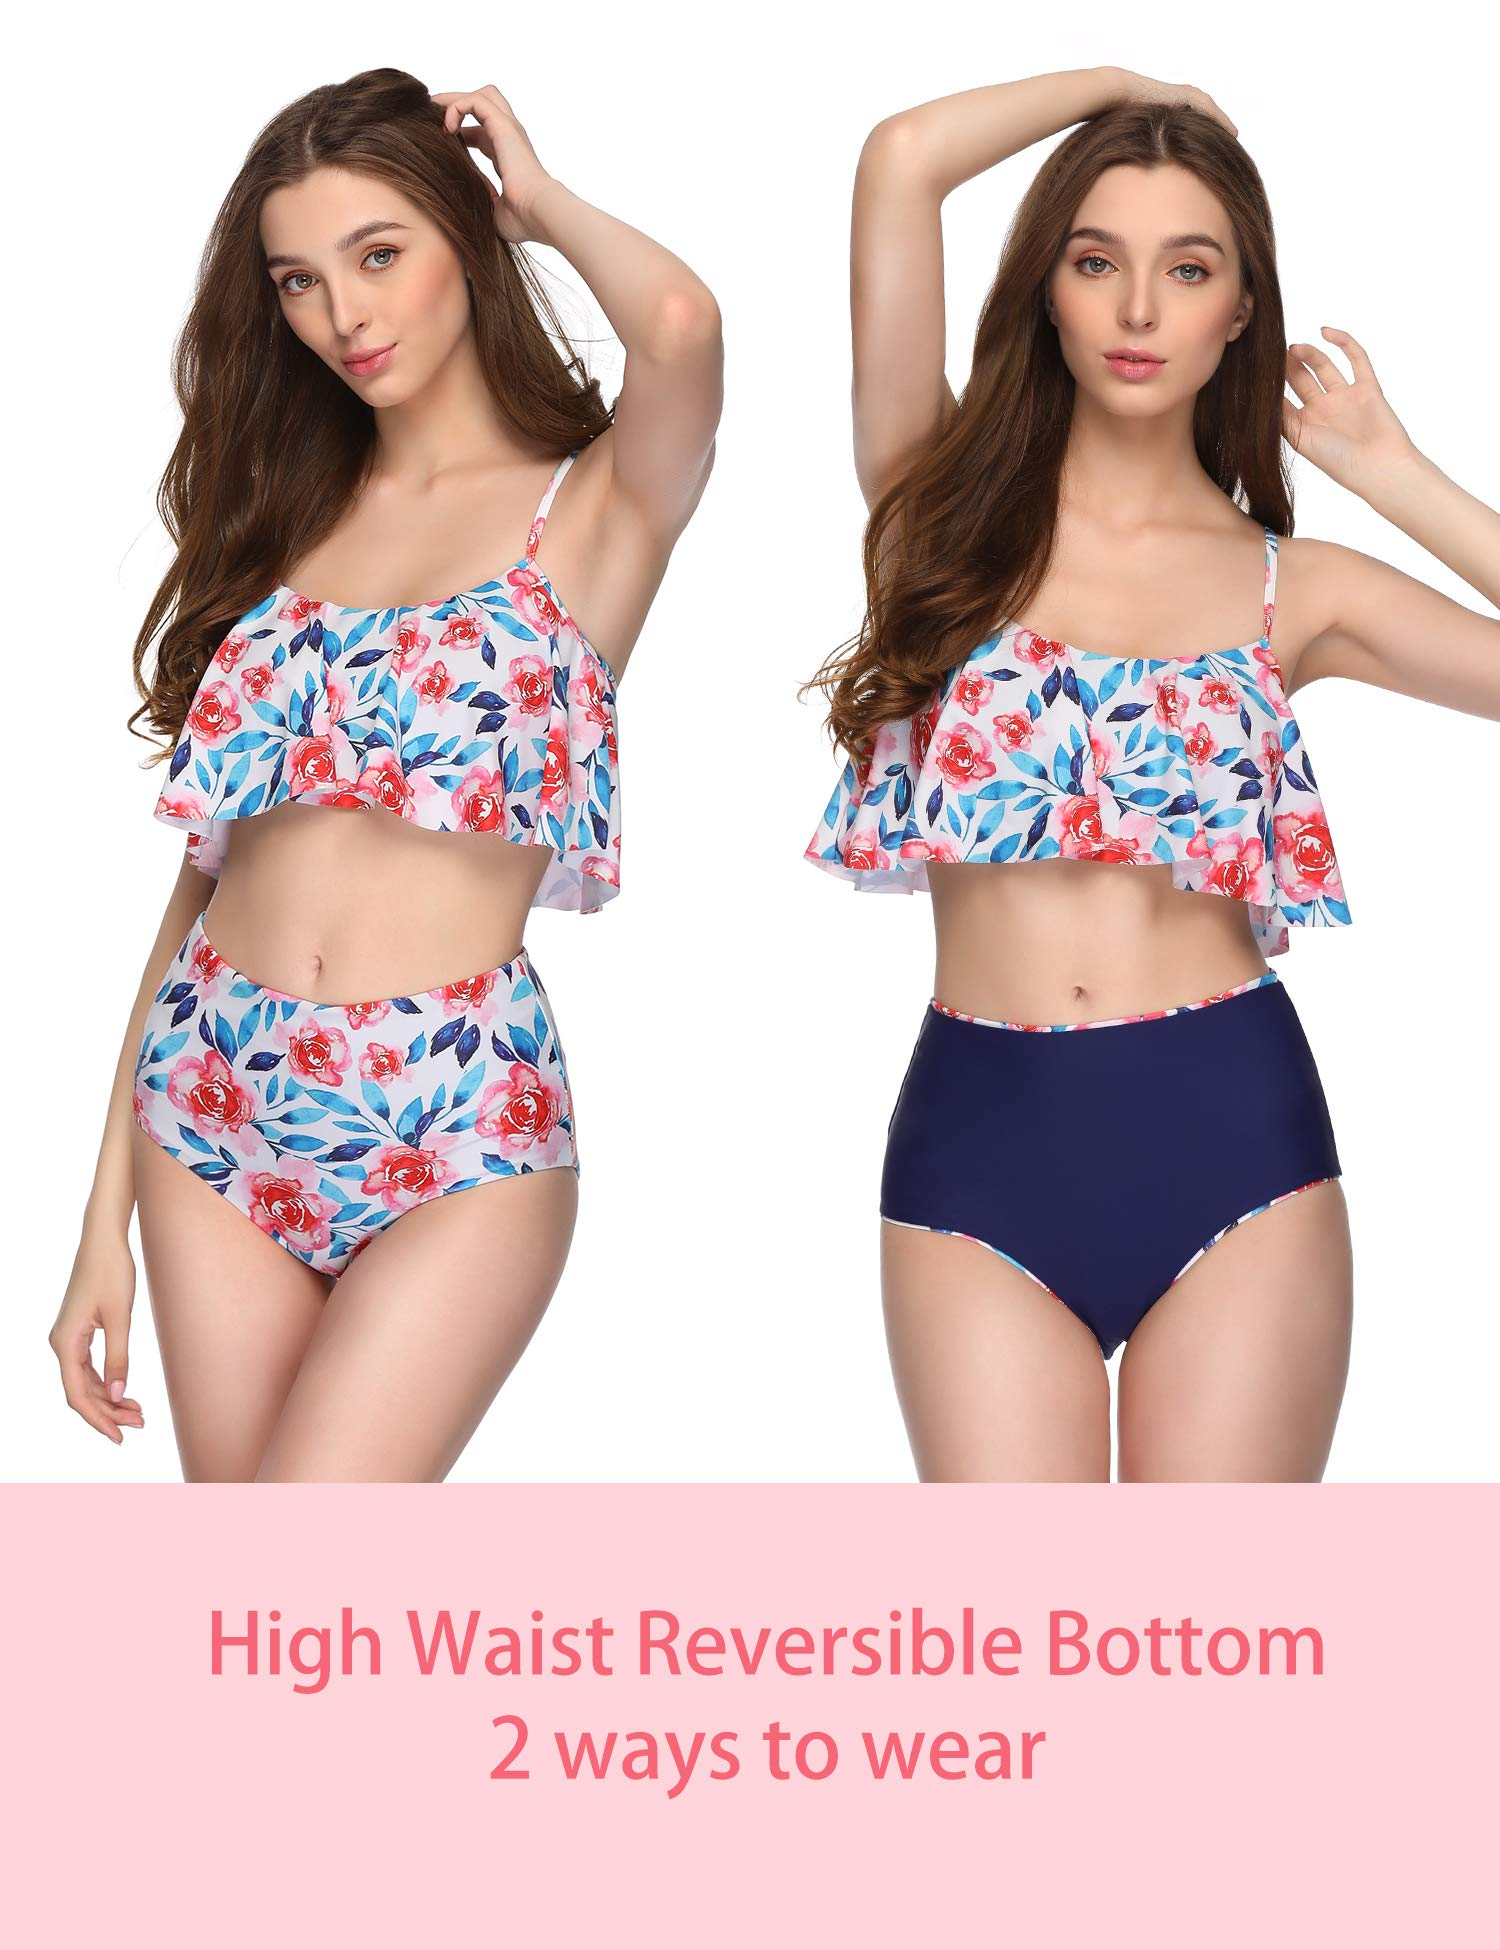 Verano Playa Swimsuits Women Floral Print Tiered Top High Waisted Bottom Two Piece Bikini Set Bathing Suit